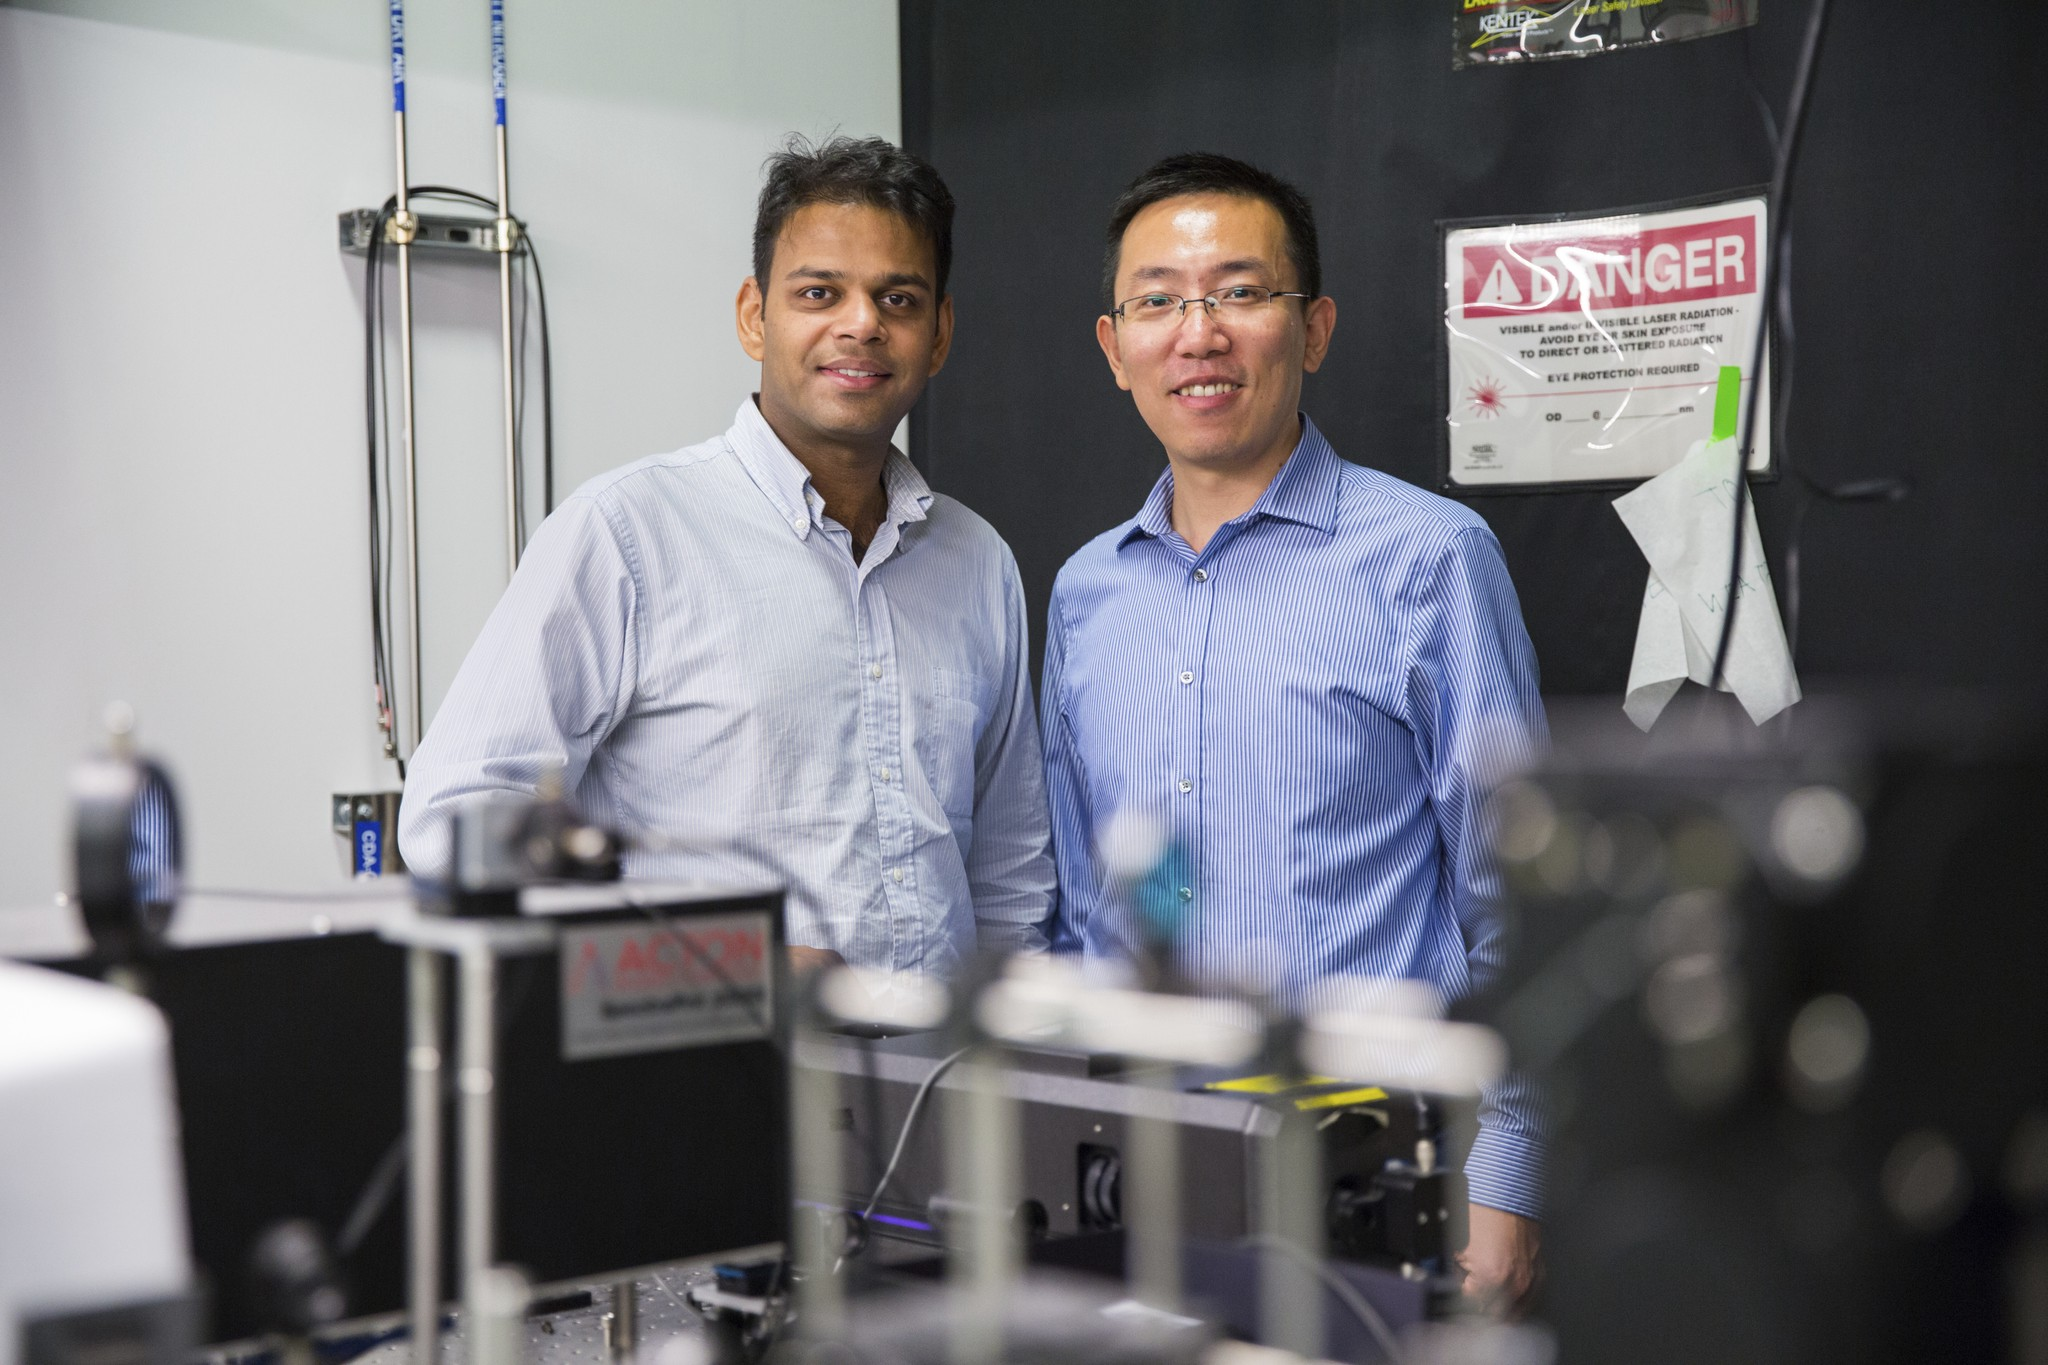 Ritesh Agarwal and Liang Feng pose among electrical engineering equipment.